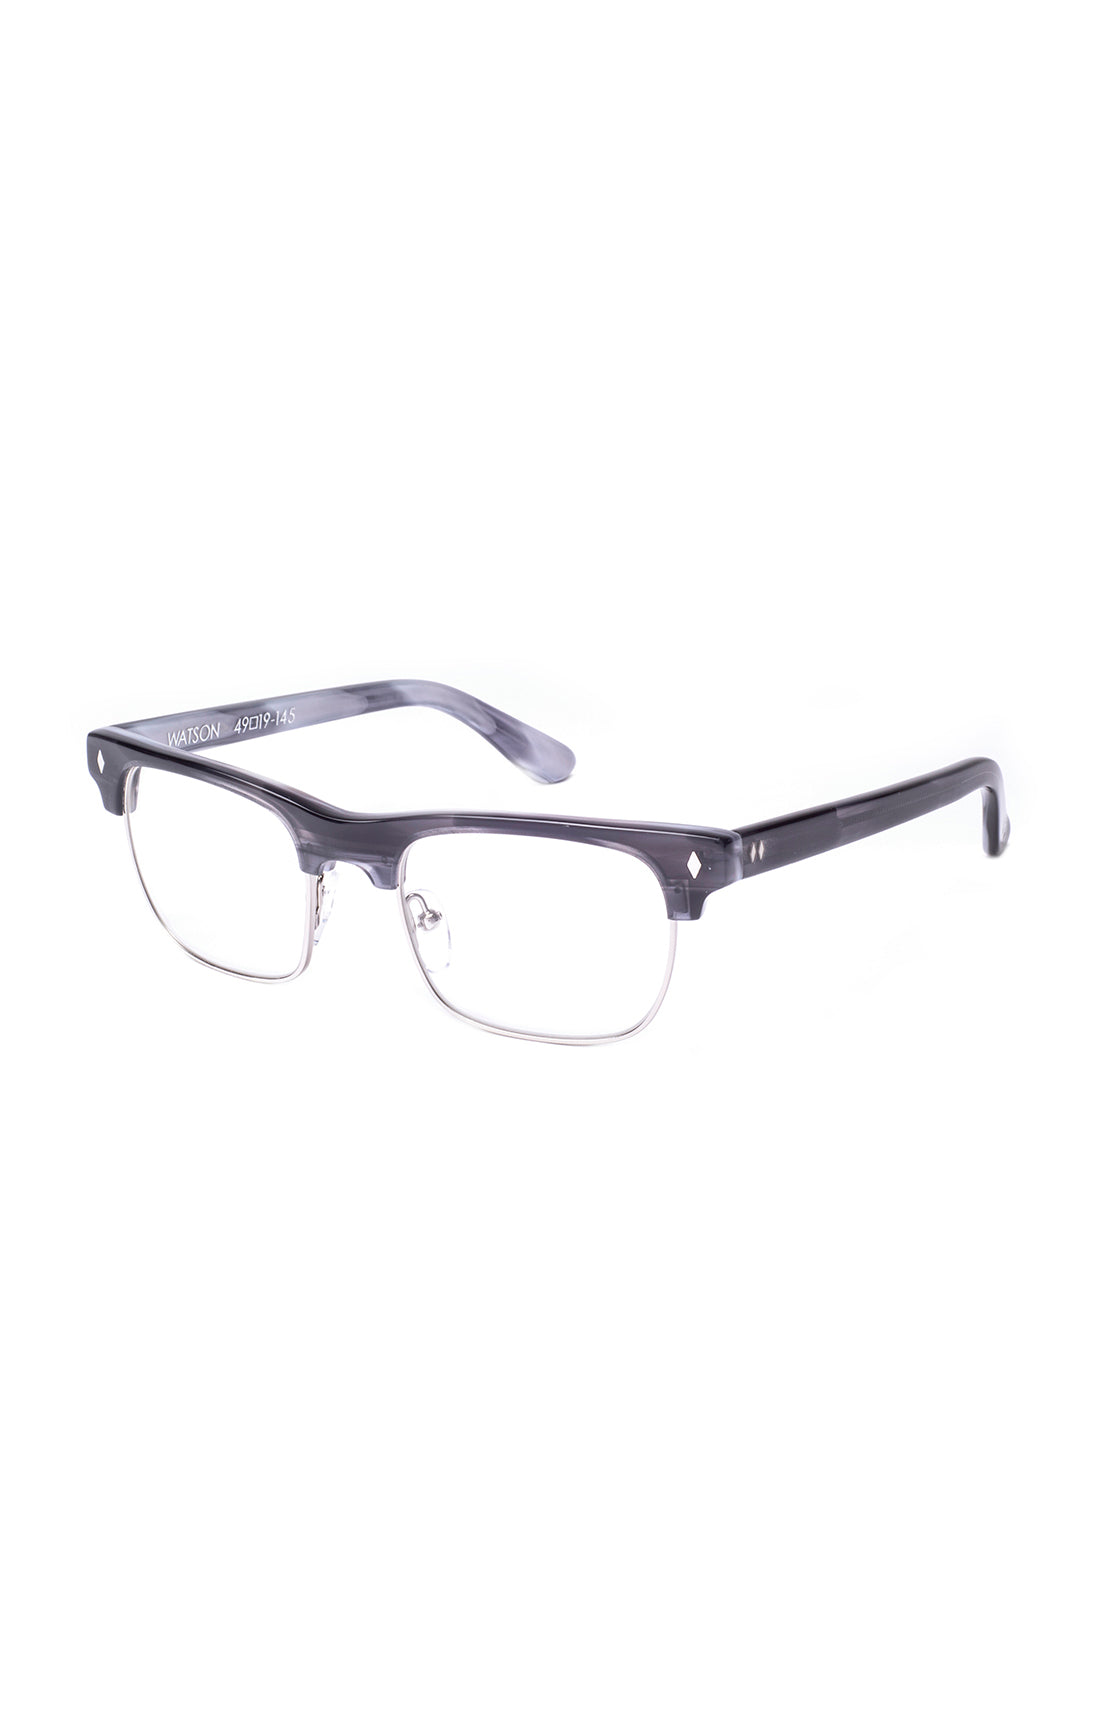 The WATSON Sunglasses by Tres Noir - Grey/Tortoise Frames with Clear ...